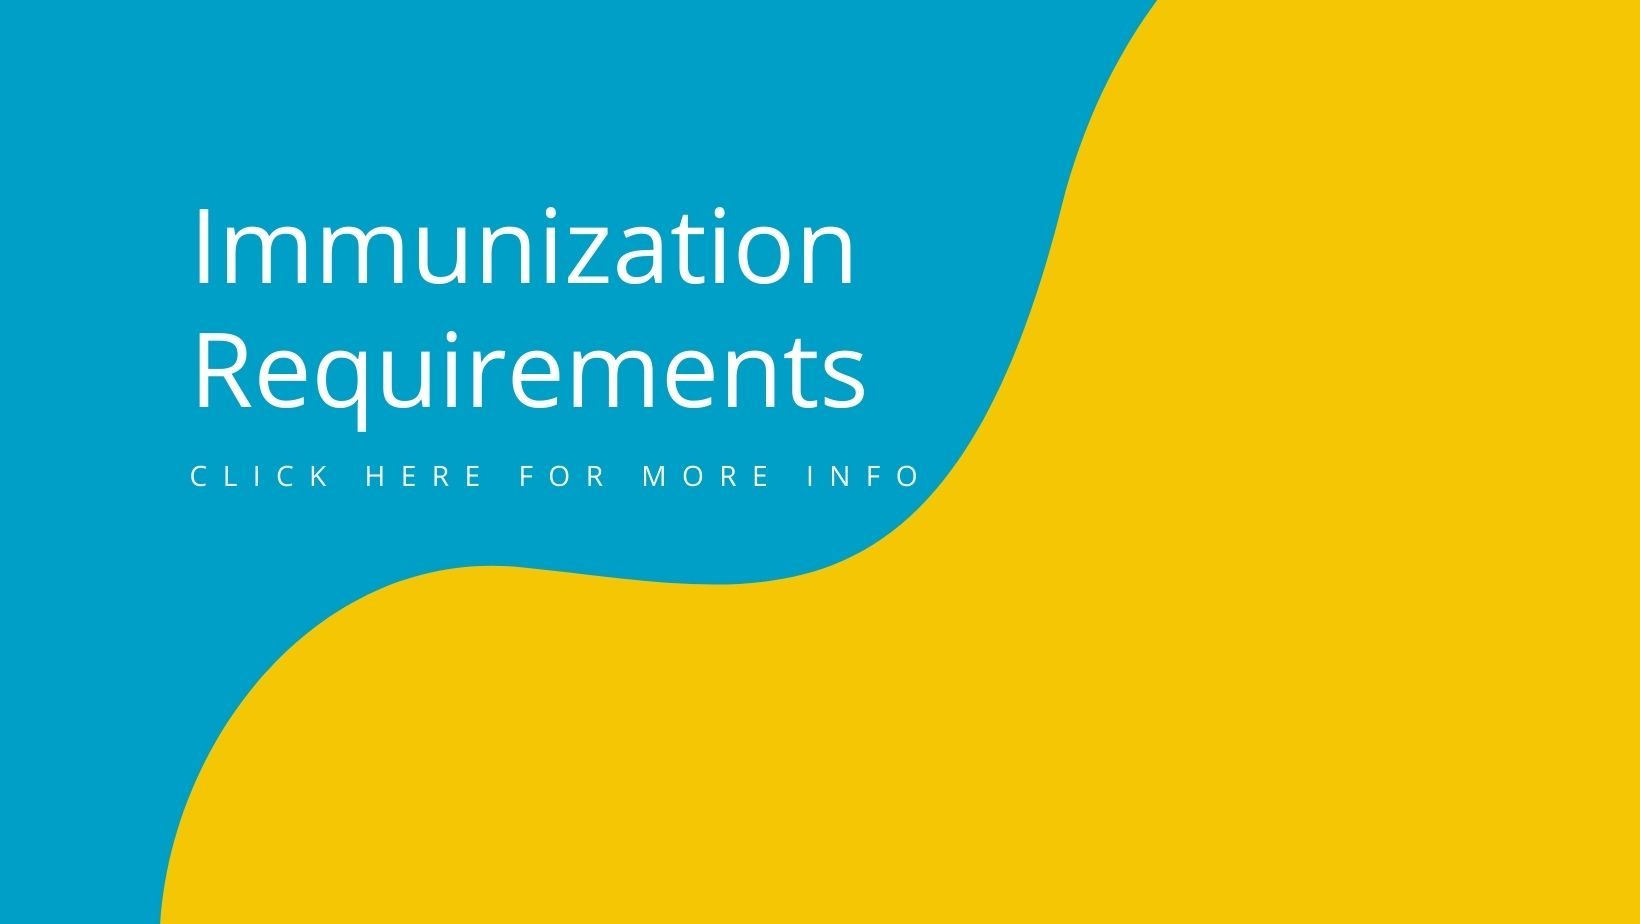 Blue and yellow immunization requirements banner to link to requirements webpage